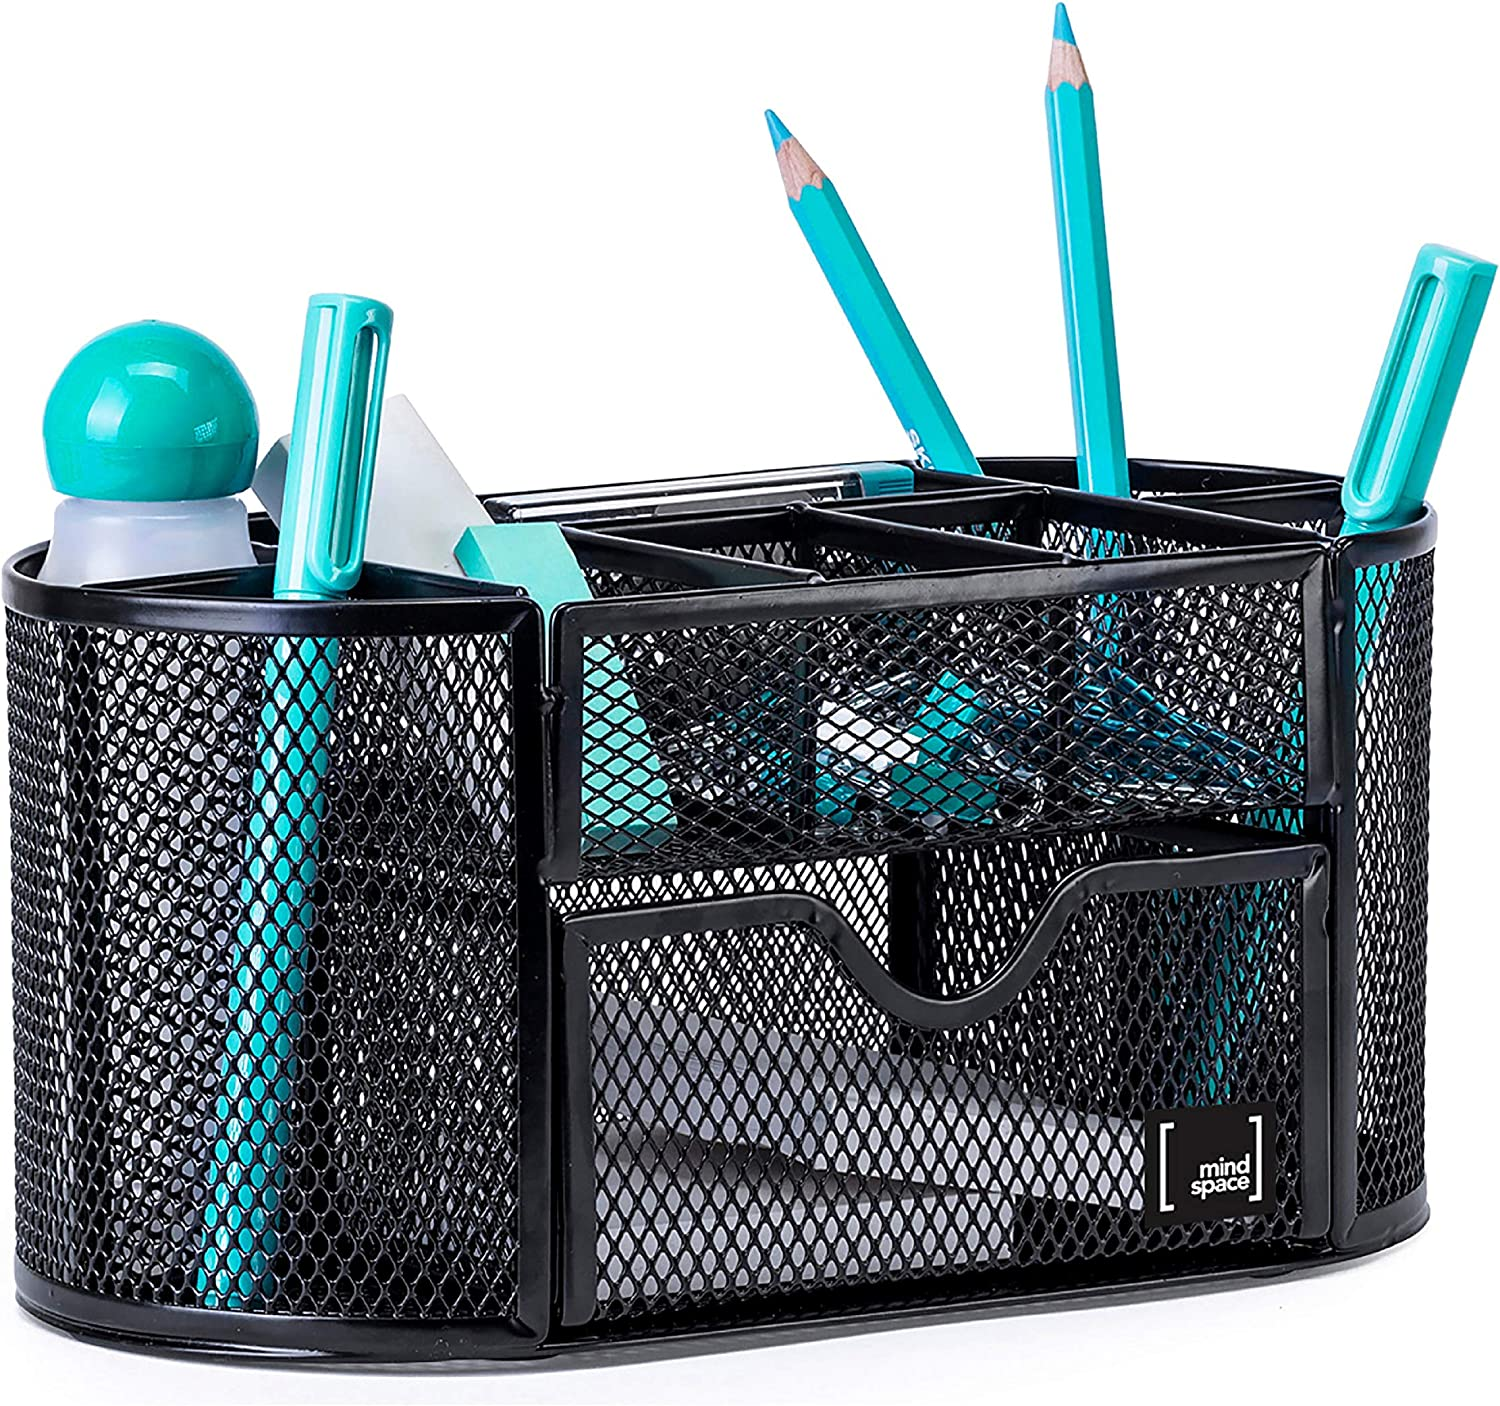 Pen Holder for Desk By Mindspace with 8 Compartments + Drawer  Office Supplies Organizer   The Mesh Collection, Black: Home Improvement